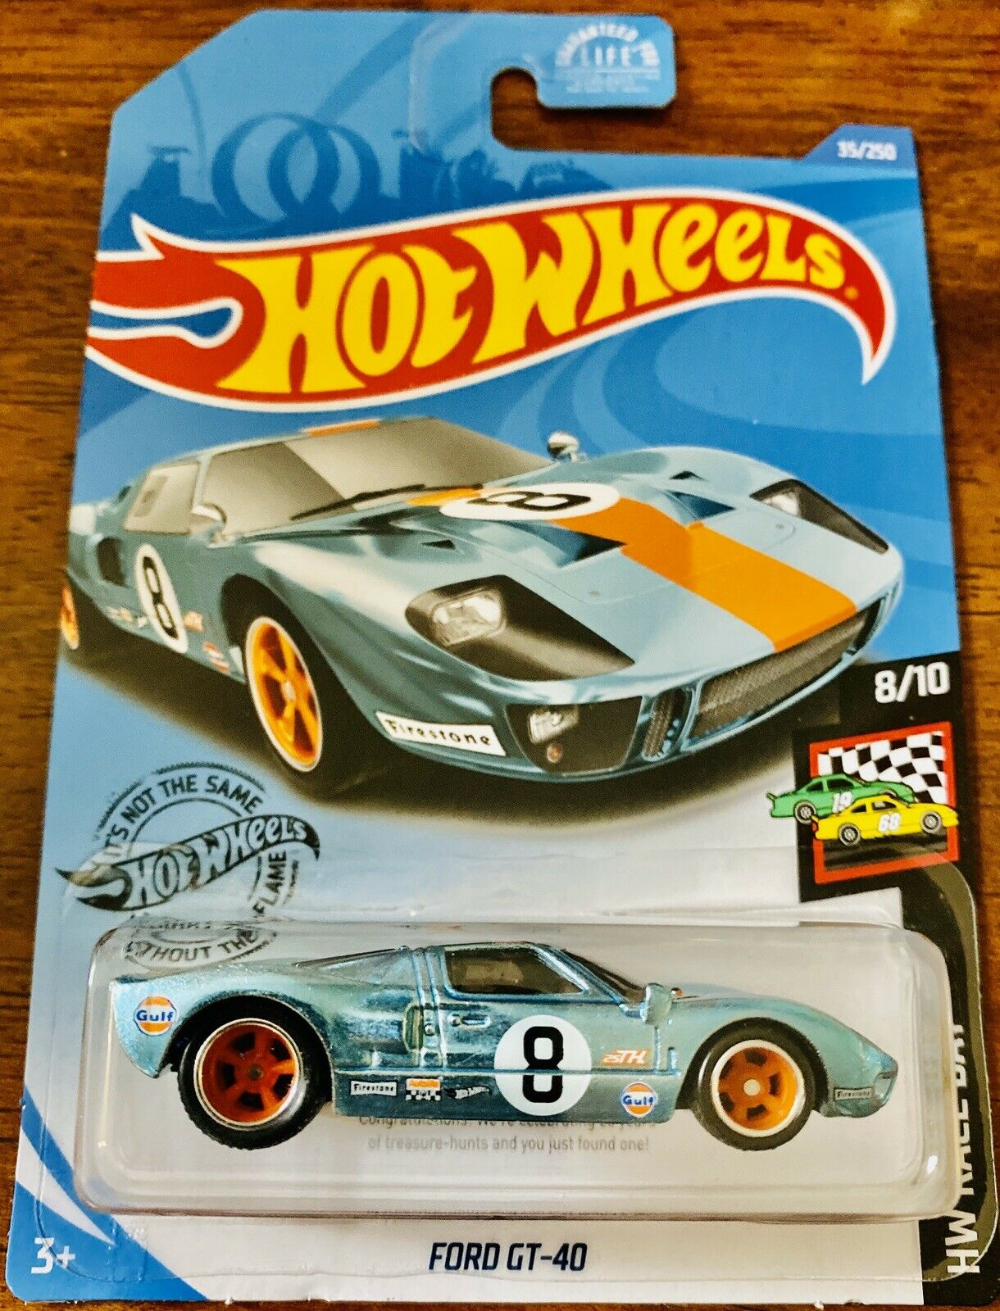 2020 Hot Wheels Super Treasure Hunt Ford Gt 40 Gulf Tampos In